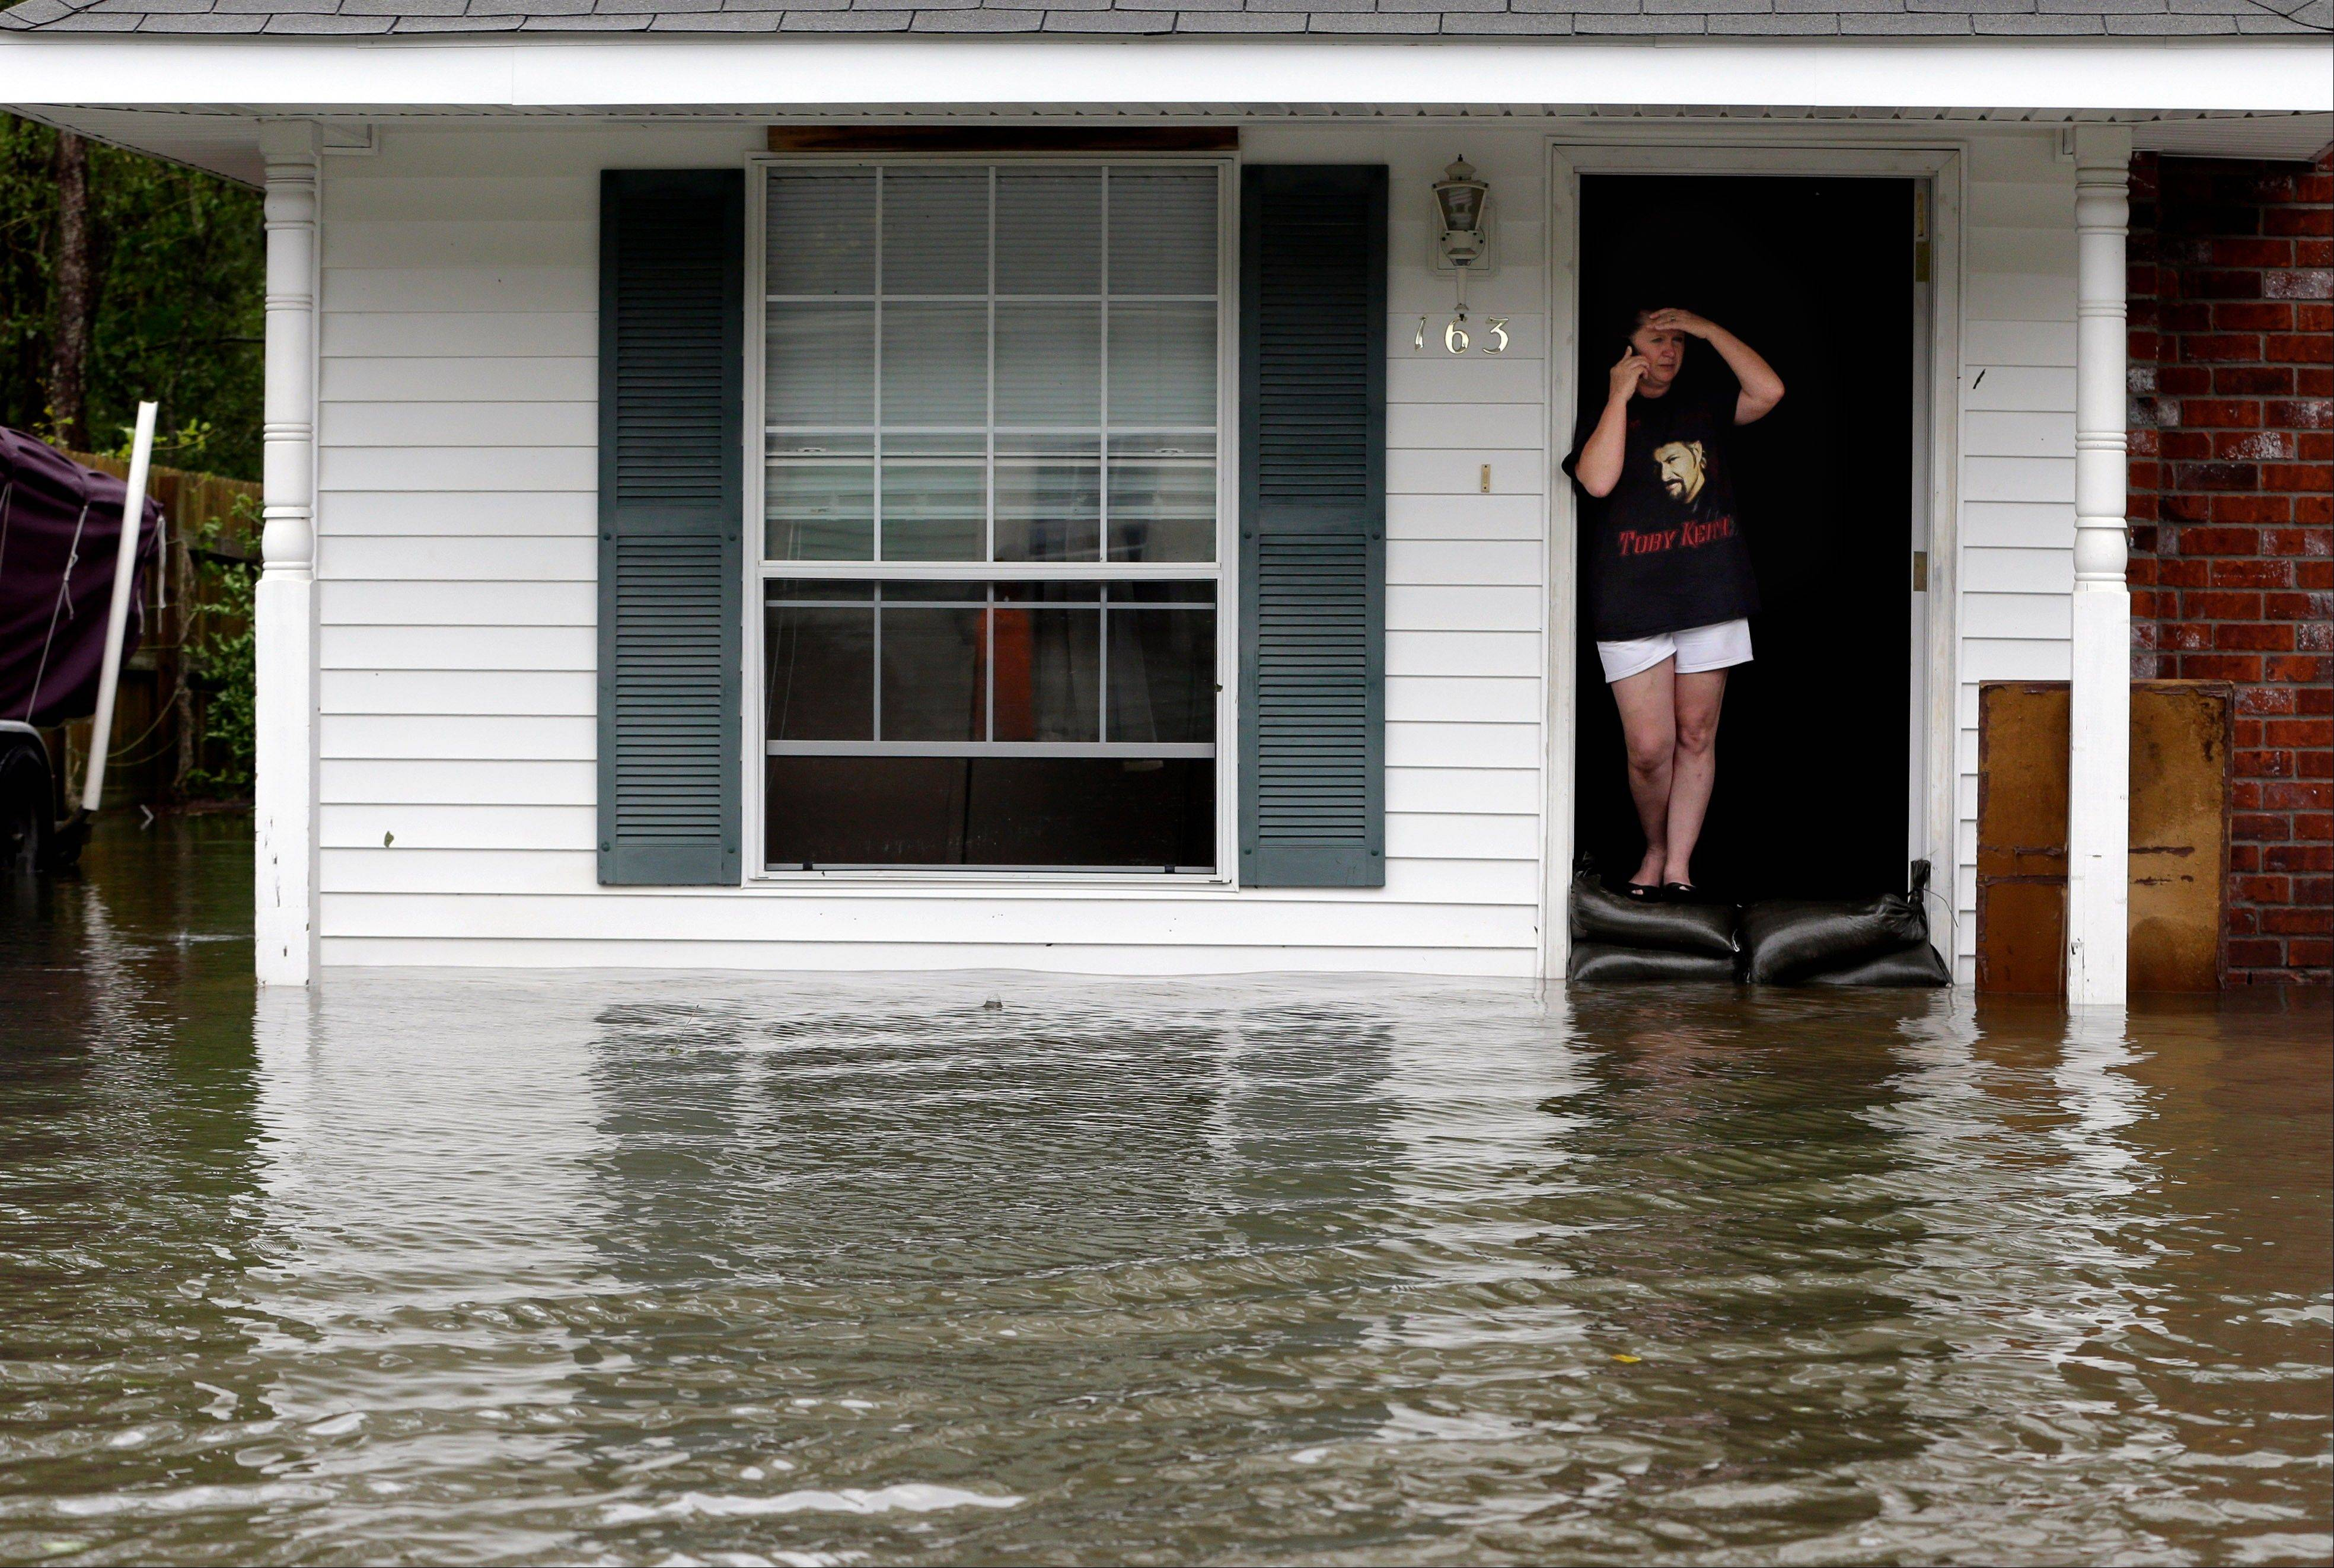 A resident whose home is surrounded by flood waters talks on the phone, Thursday, Aug. 30, 2012, in LaPlace, La.